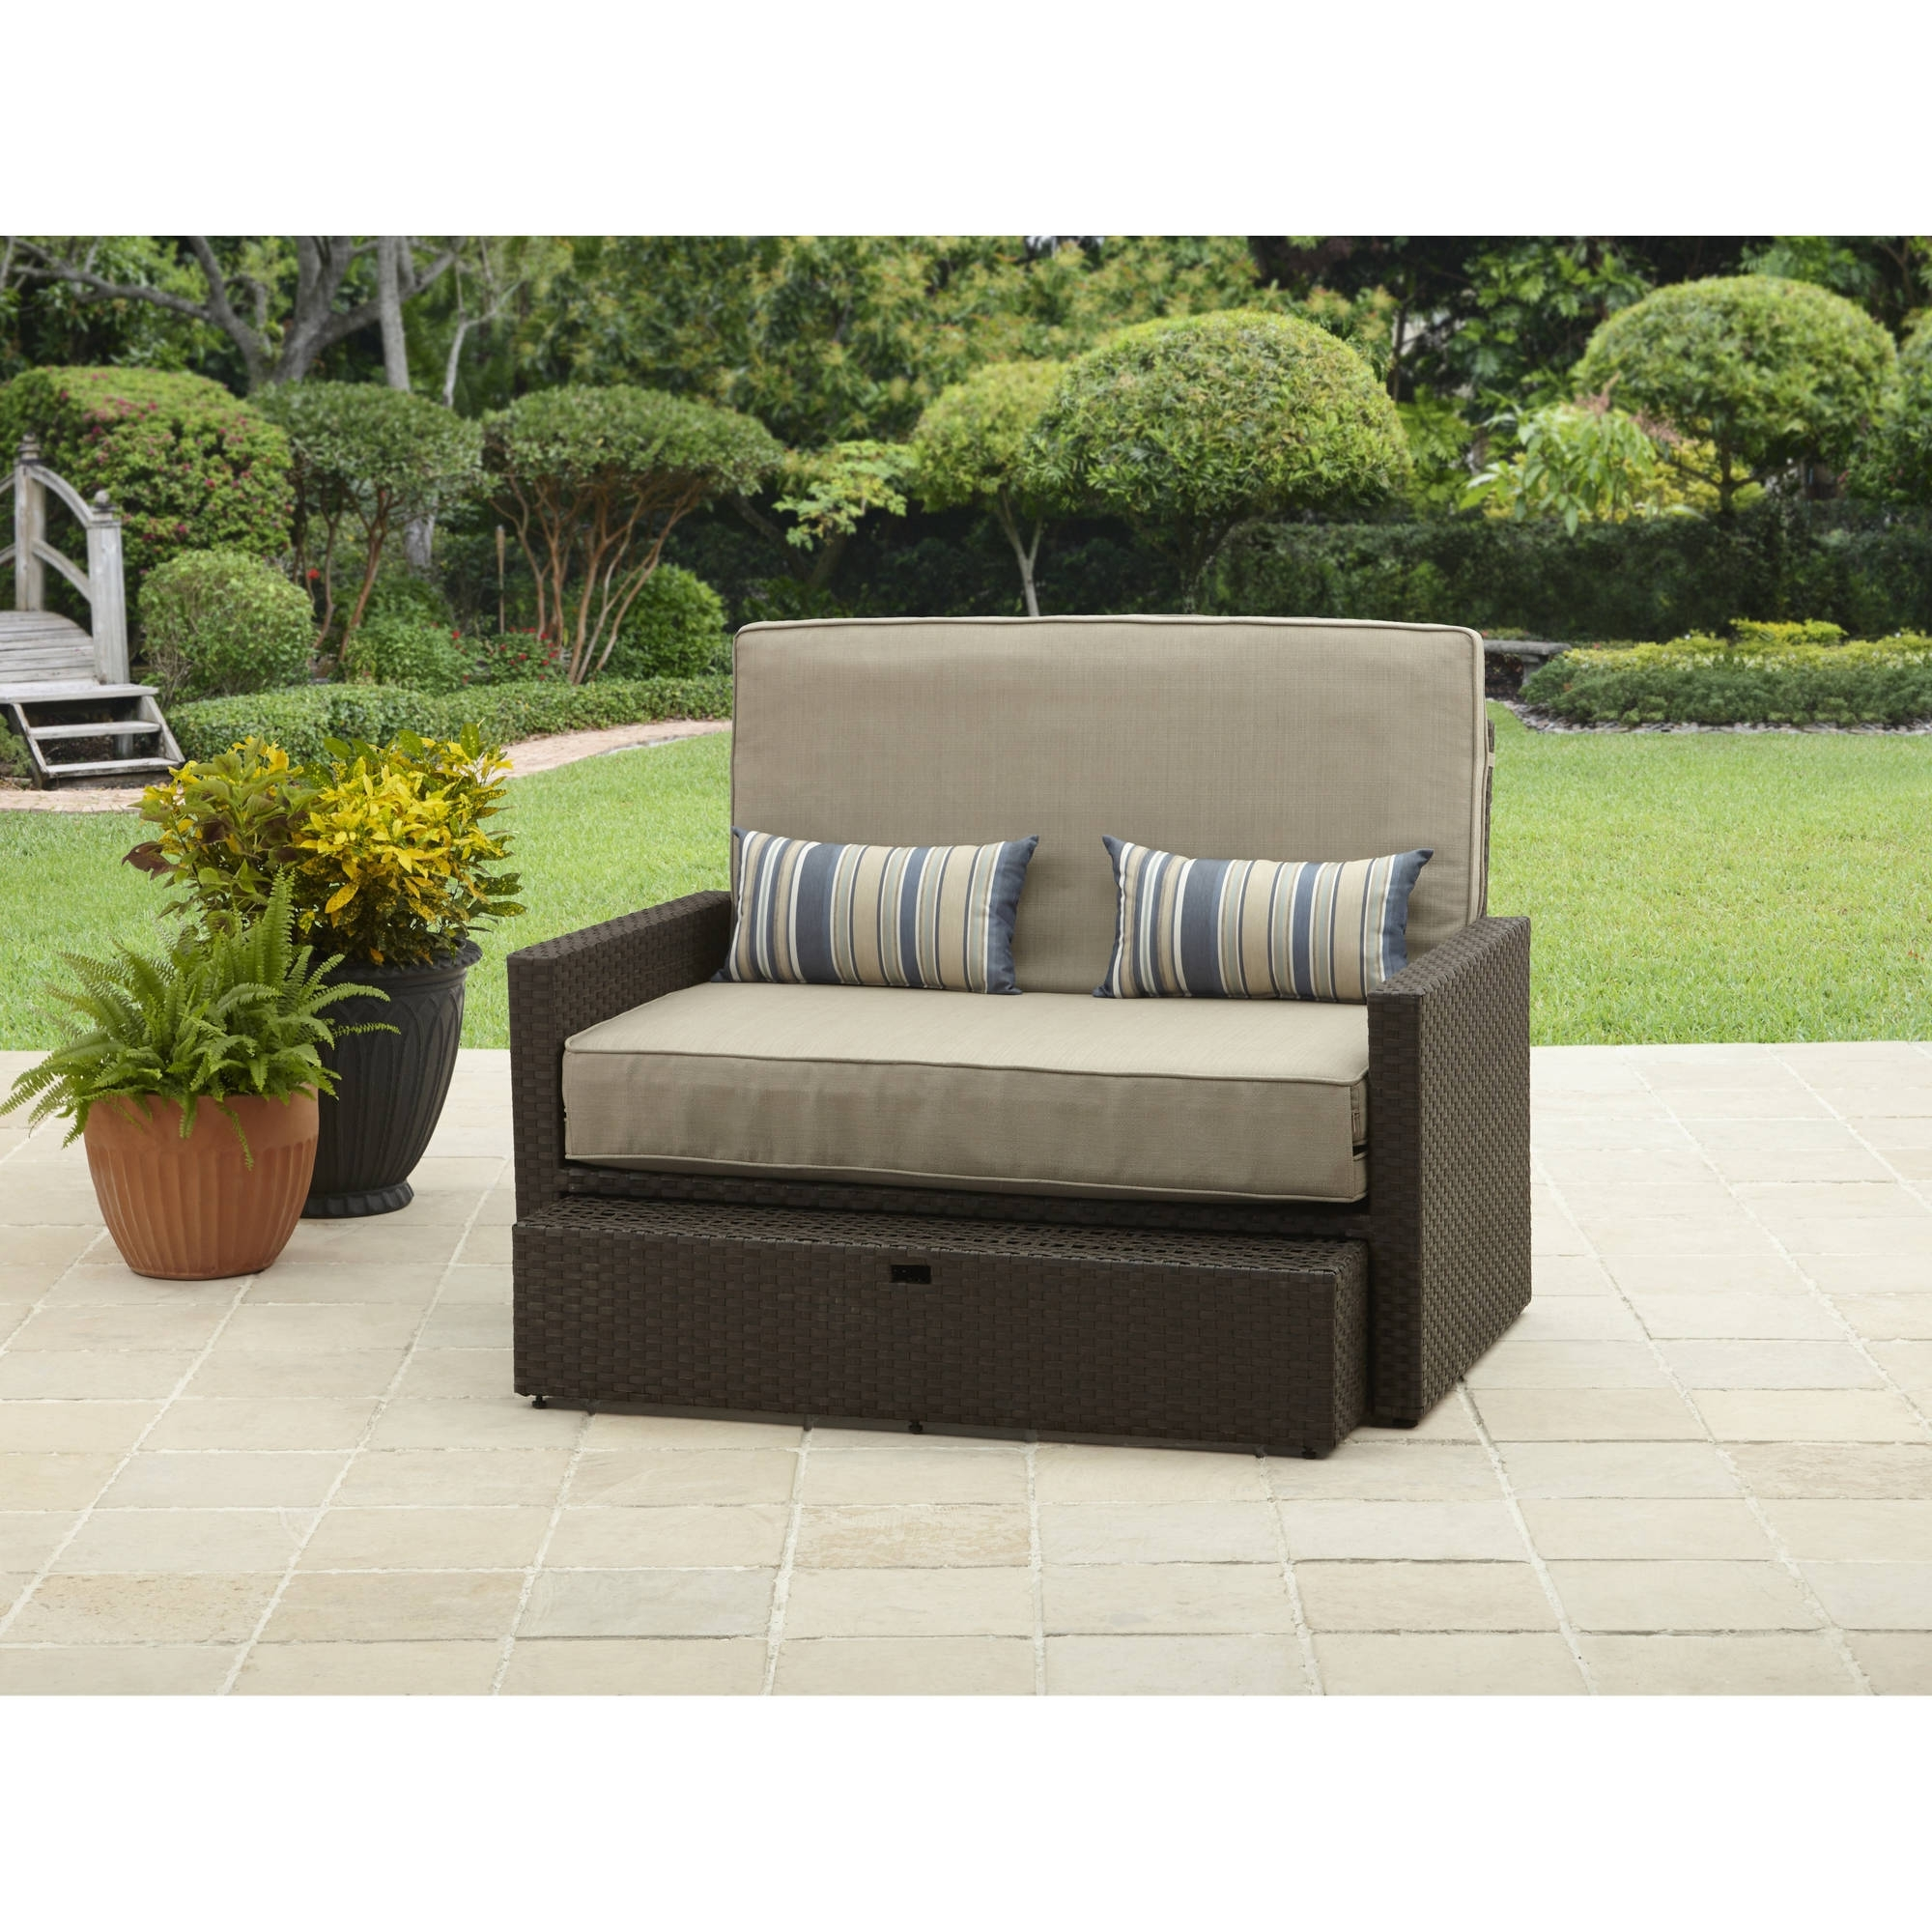 Better Homes And Gardens Avila Beach Loveseat/chaise – Walmart For 2018 Chaise Loveseats (View 12 of 15)